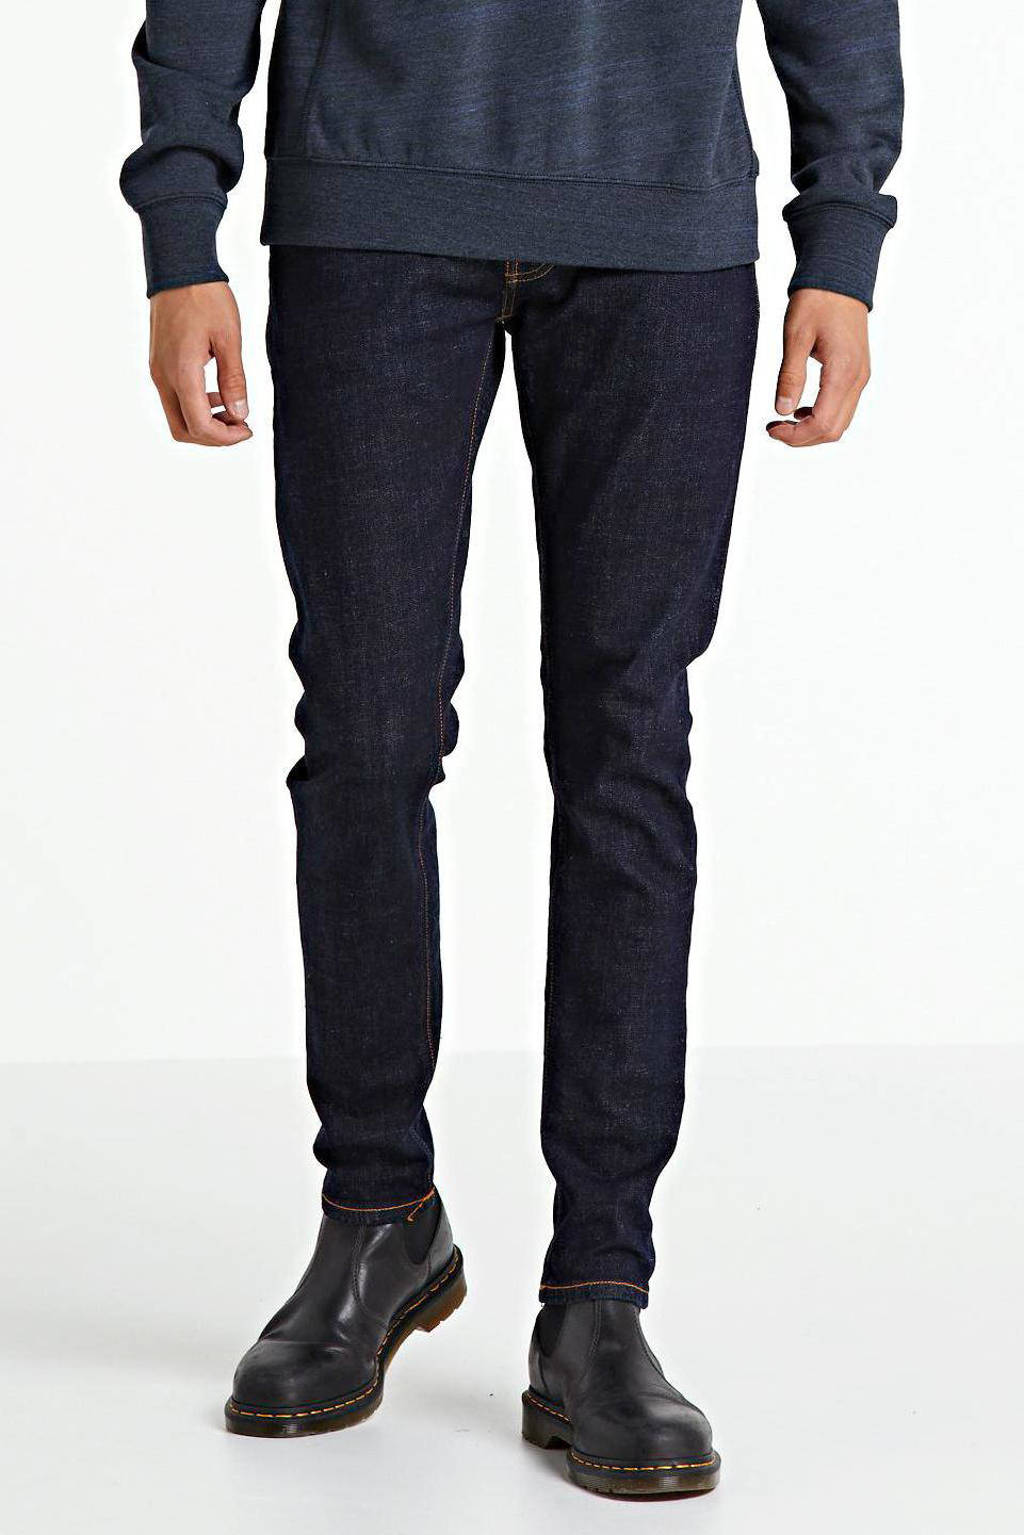 Nudie Jeans skinny fit jeans Tight Terry rinse twill, Rinse Twill